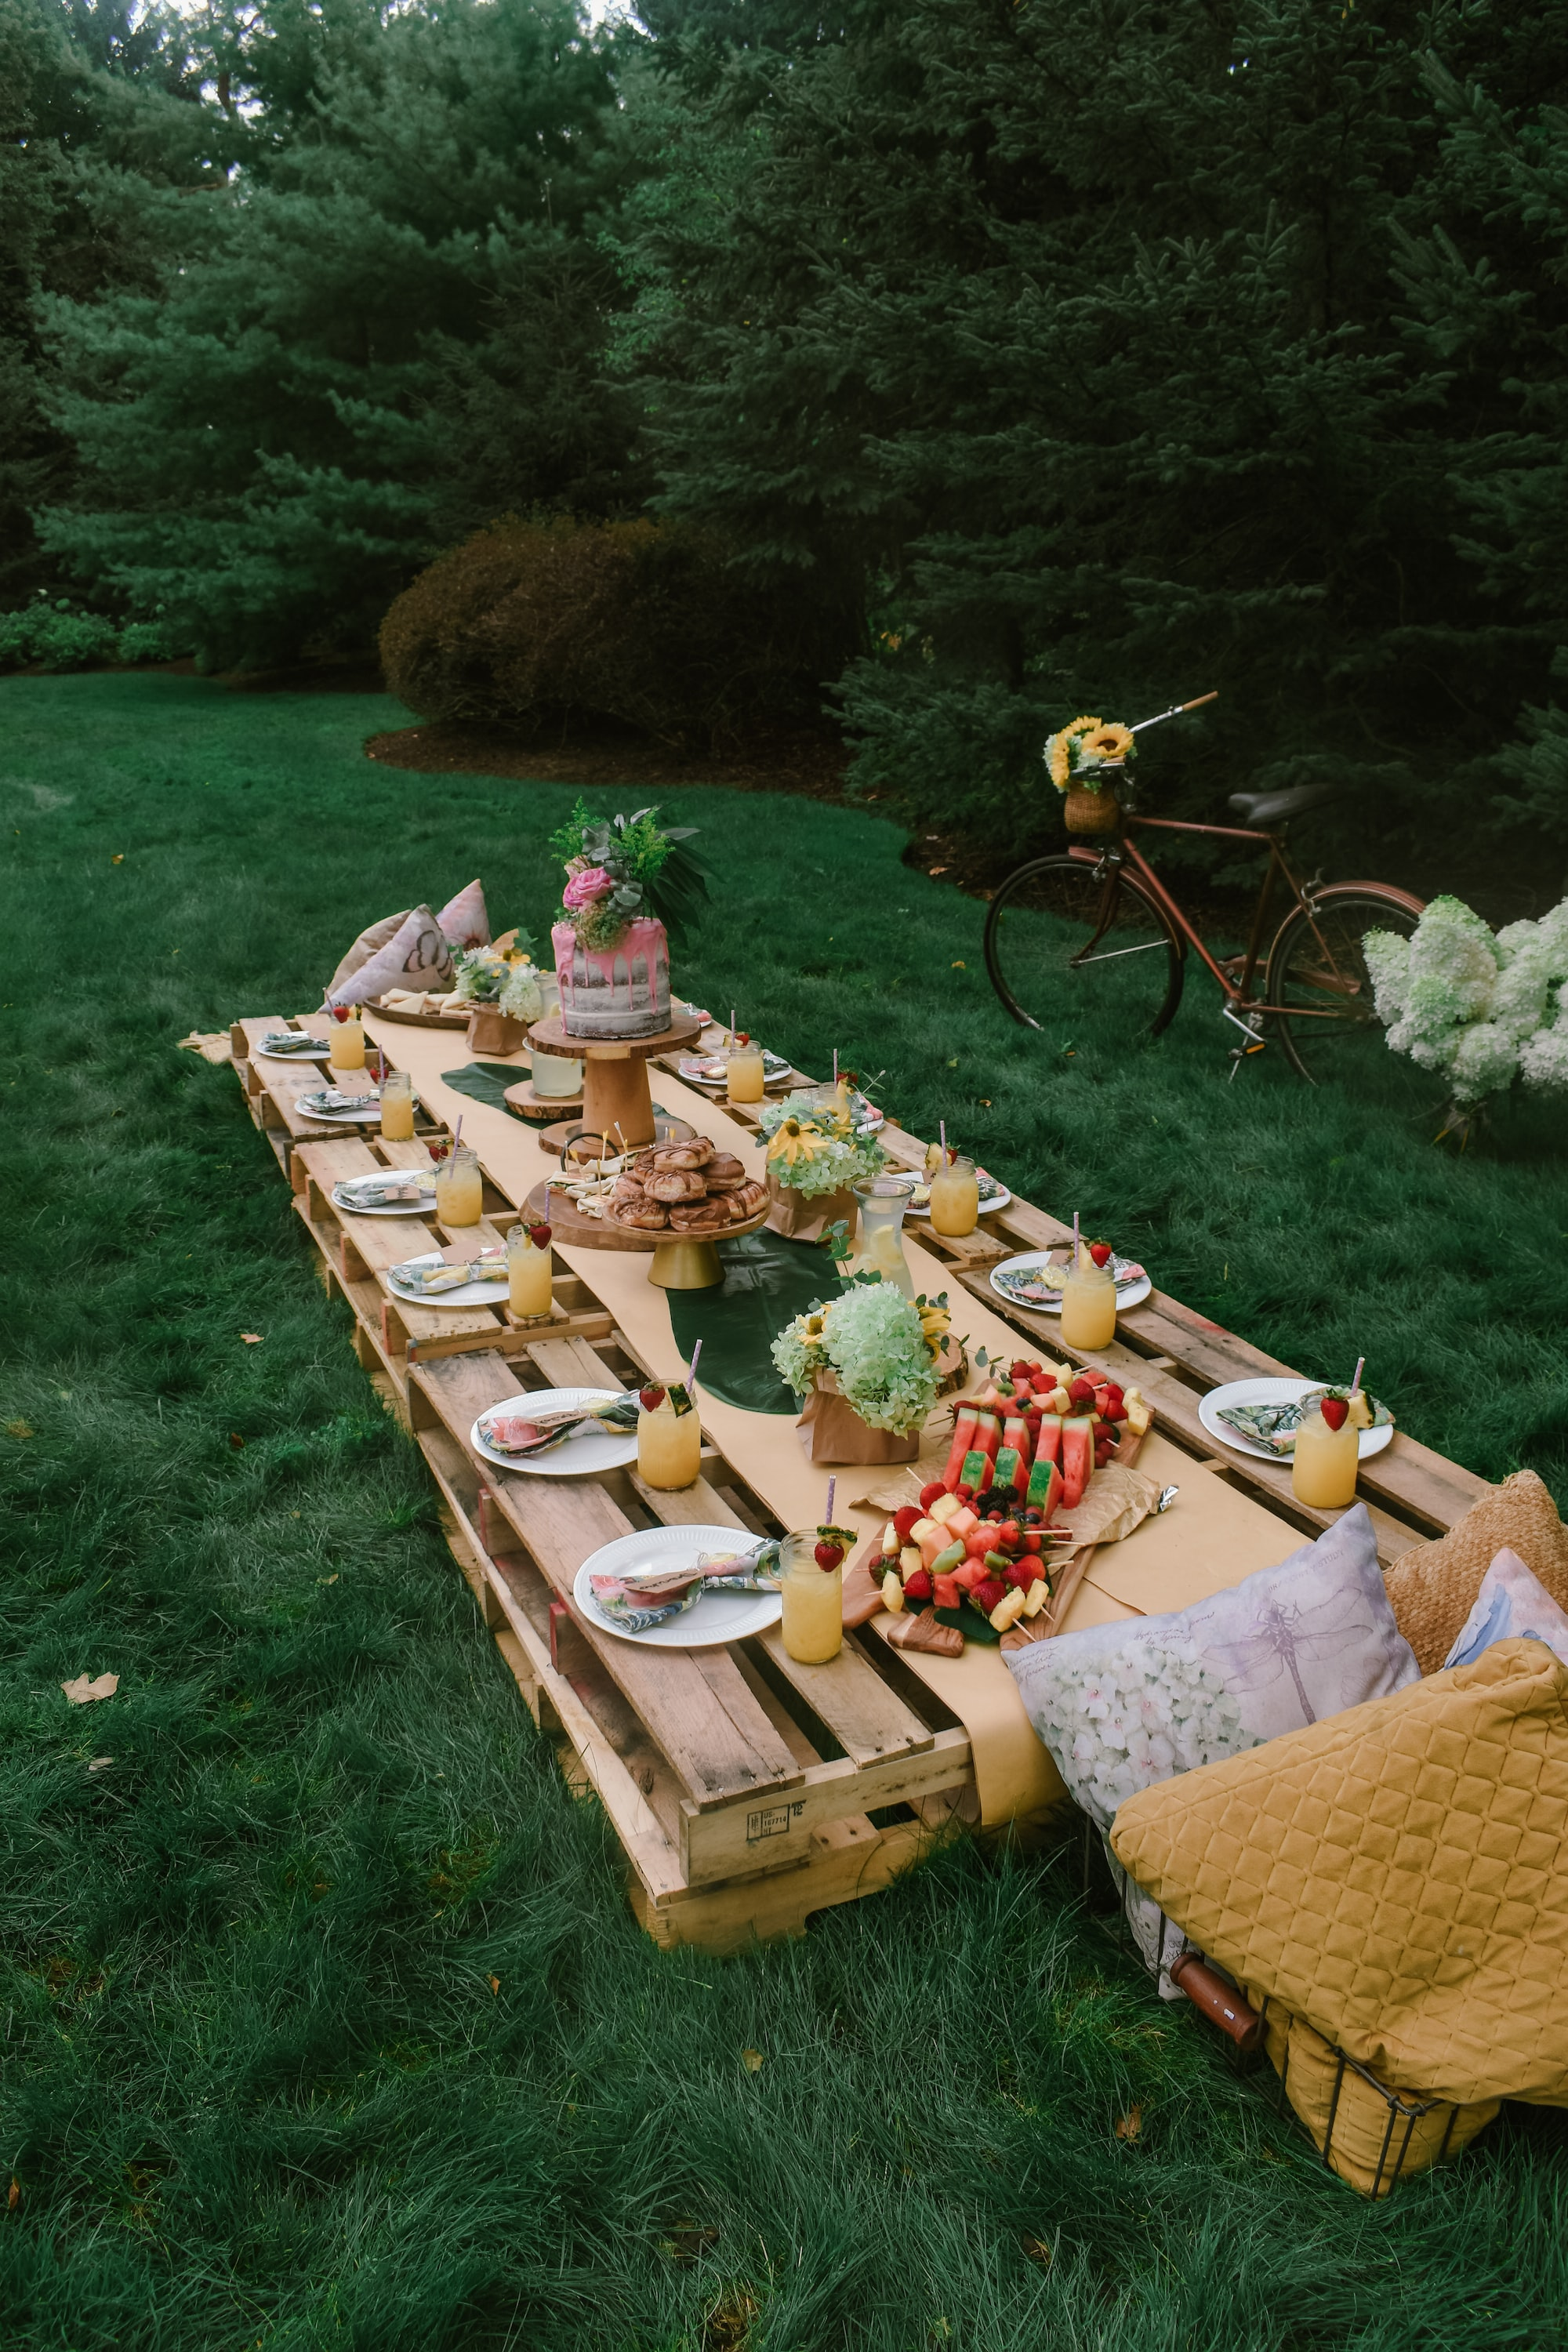 Pallet table with food and place settings